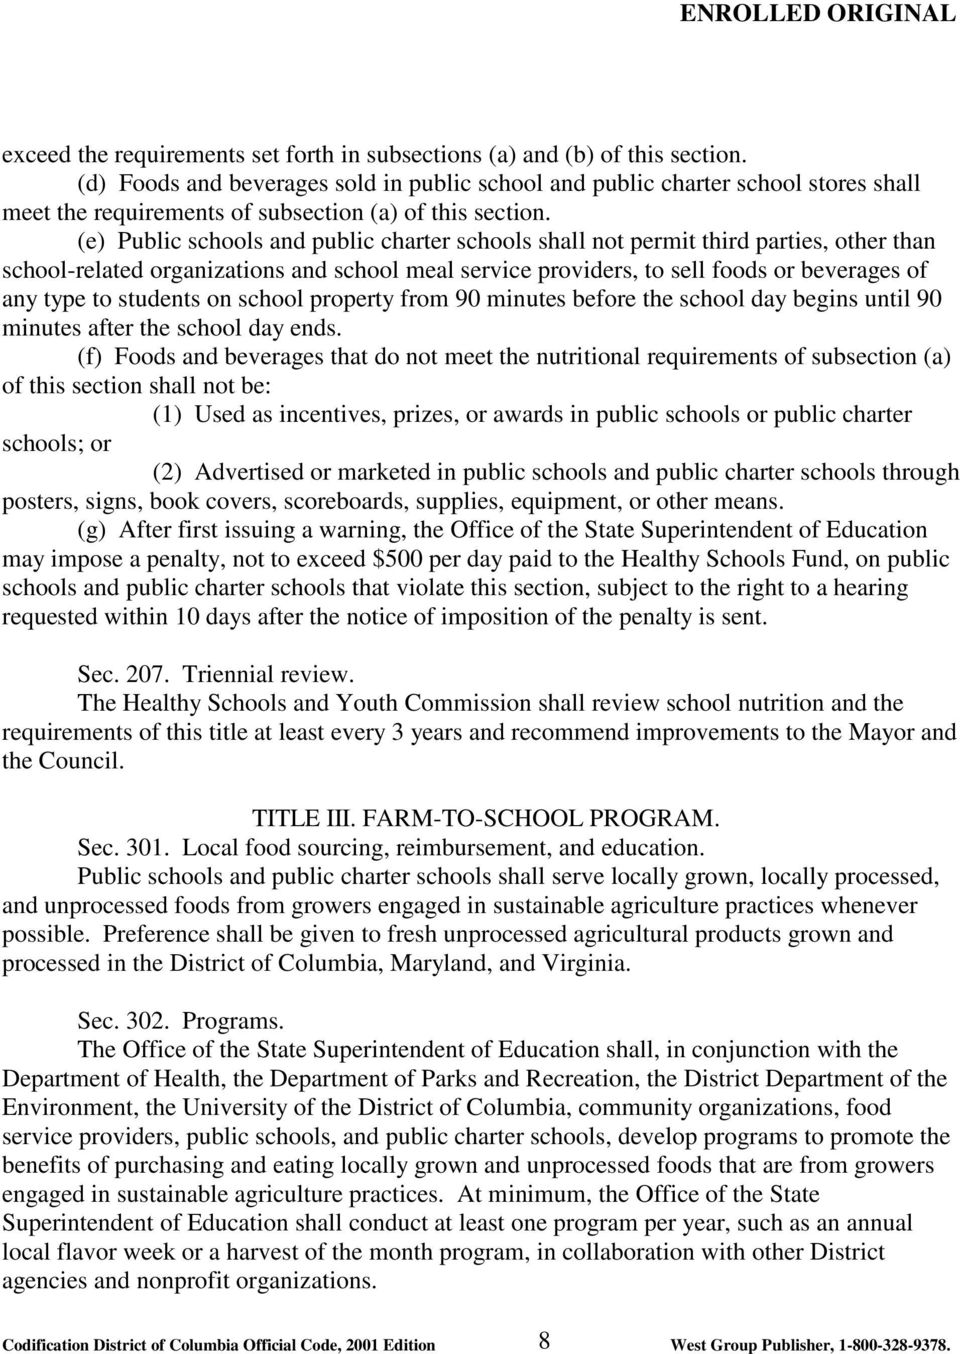 (e) Public schools and public charter schools shall not permit third parties, other than school-related organizations and school meal service providers, to sell foods or beverages of any type to